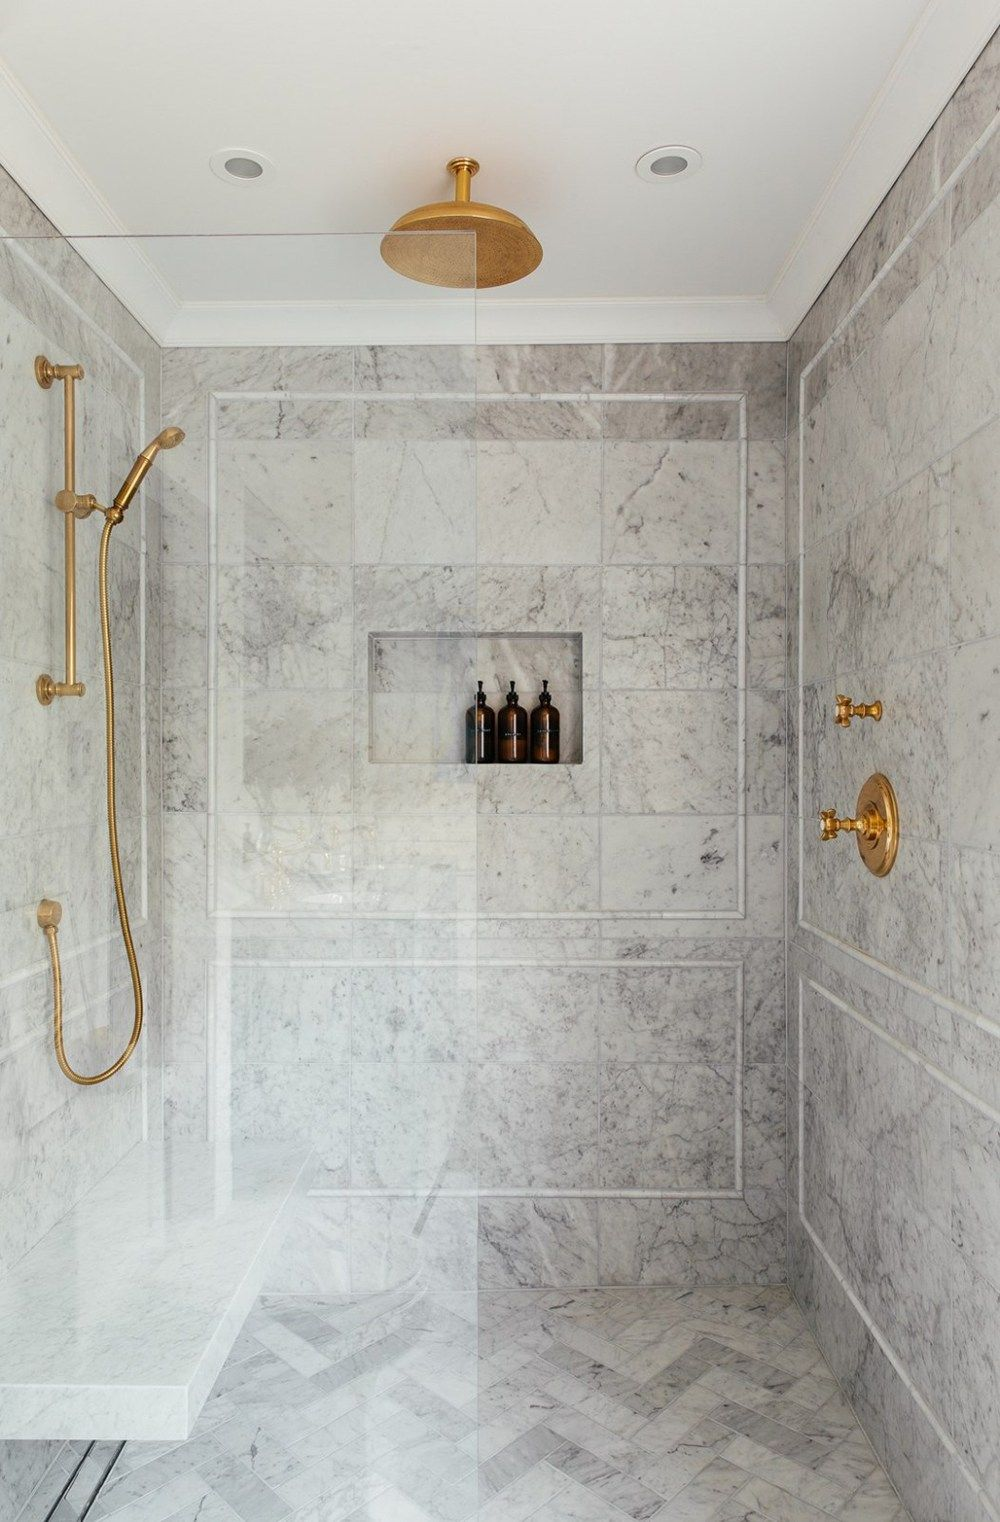 How To Plan And Design A Shower Niche Room For Tuesday Shower Niche Bathrooms Remodel Marble Showers